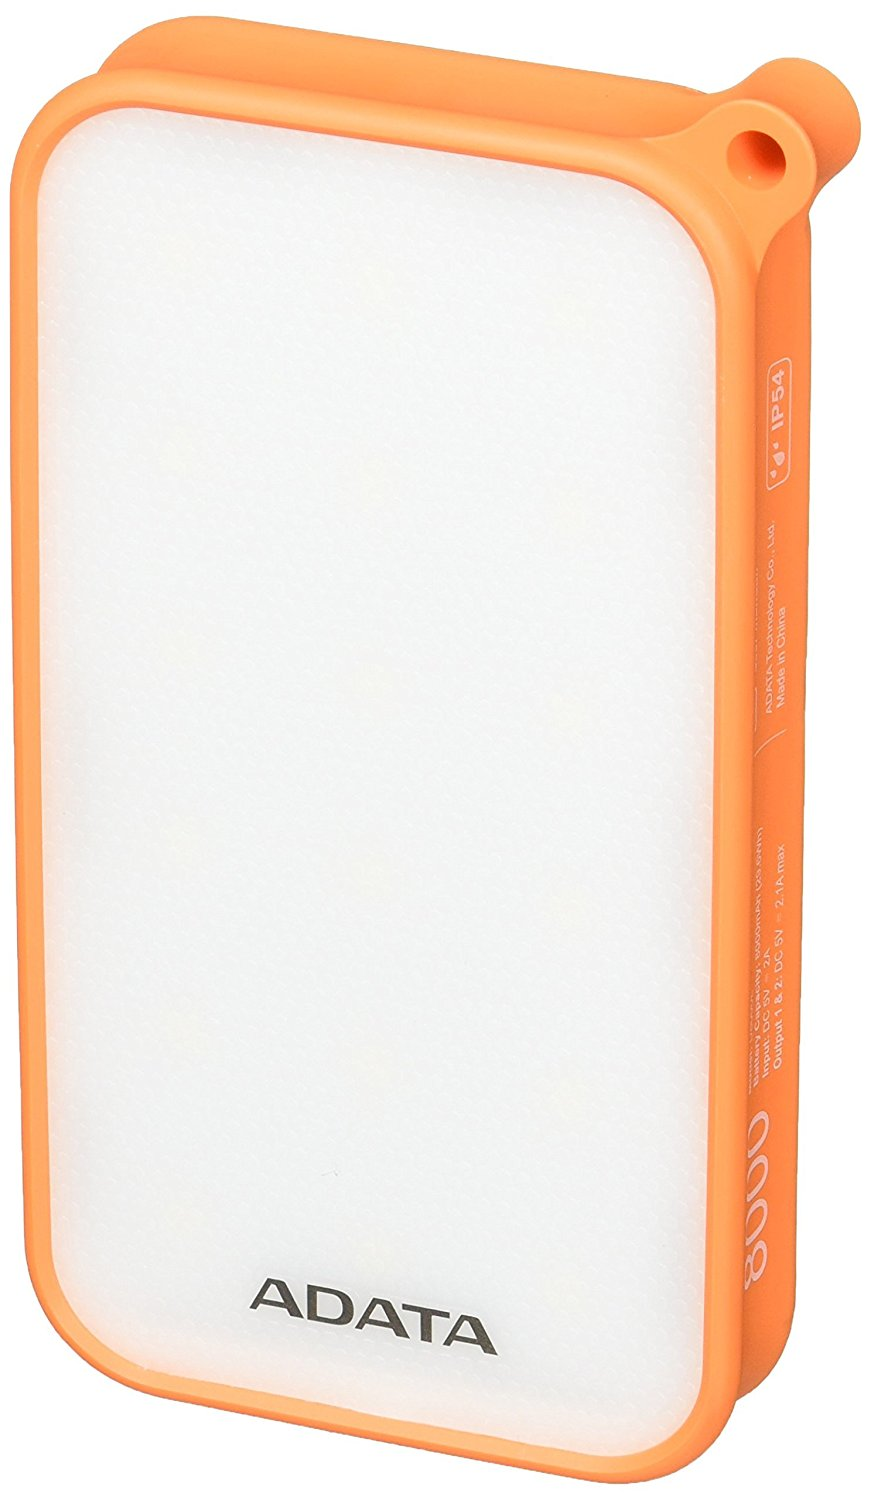 Baterie Externa A-Data D8000L 8000 mAh Orange